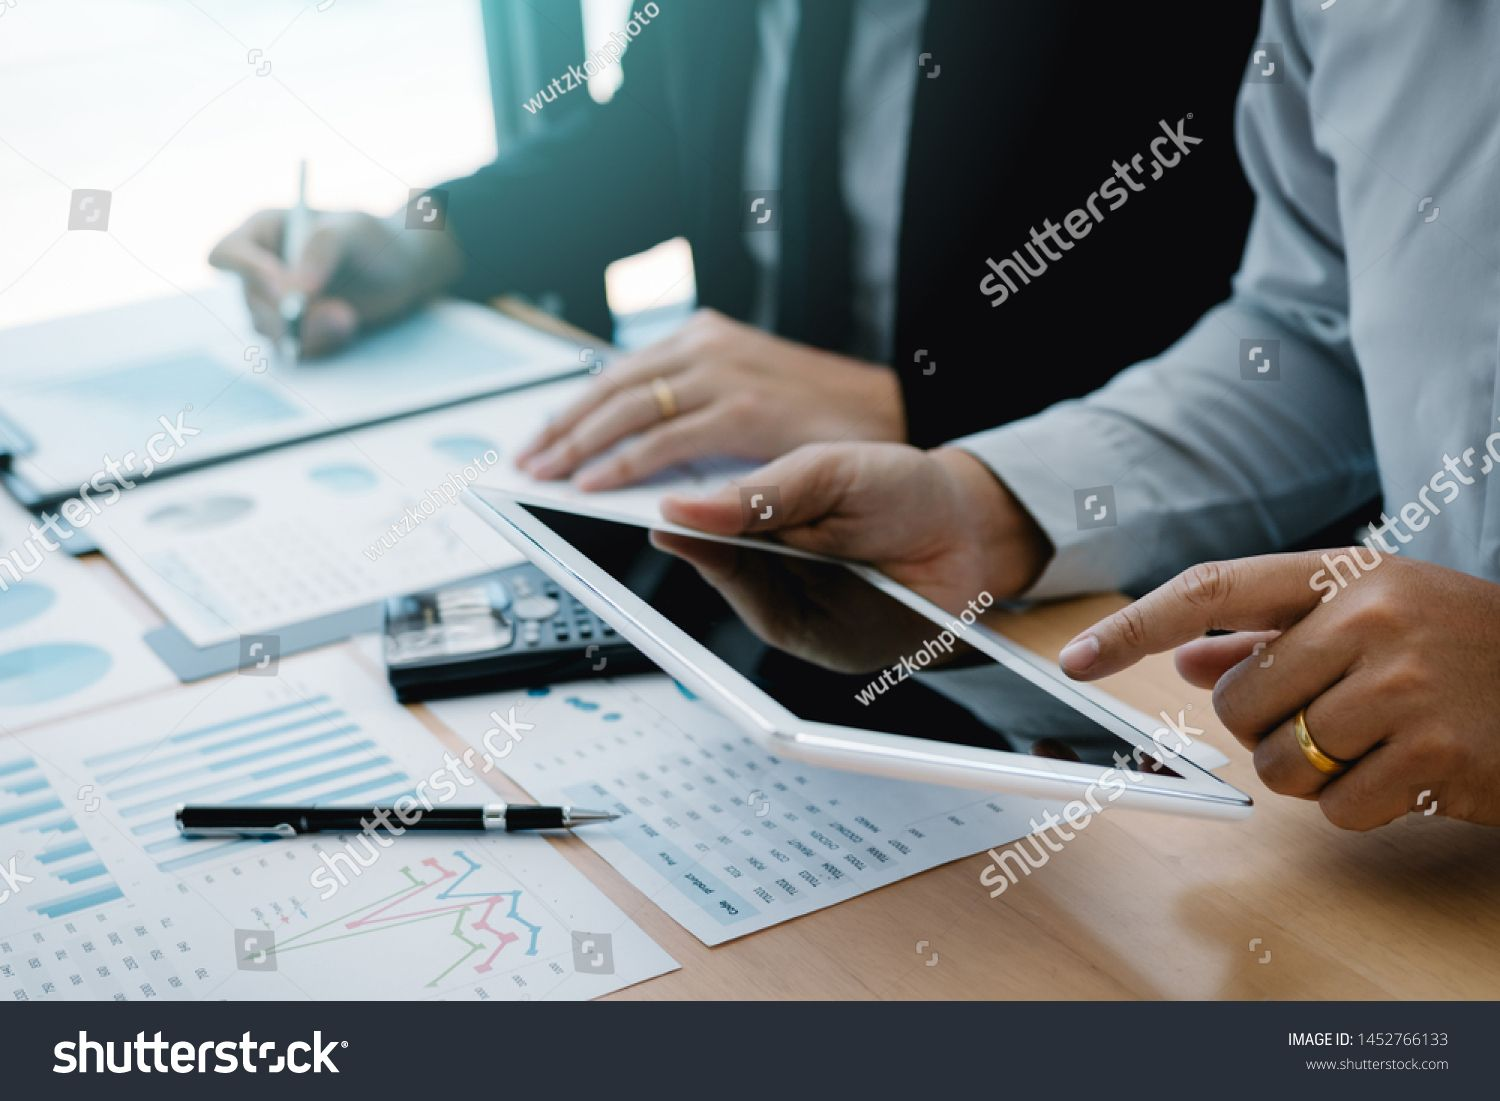 Managers are using tablets to analyze sales cost reports and explain summary reports to employees calculate and record summary information data in the office